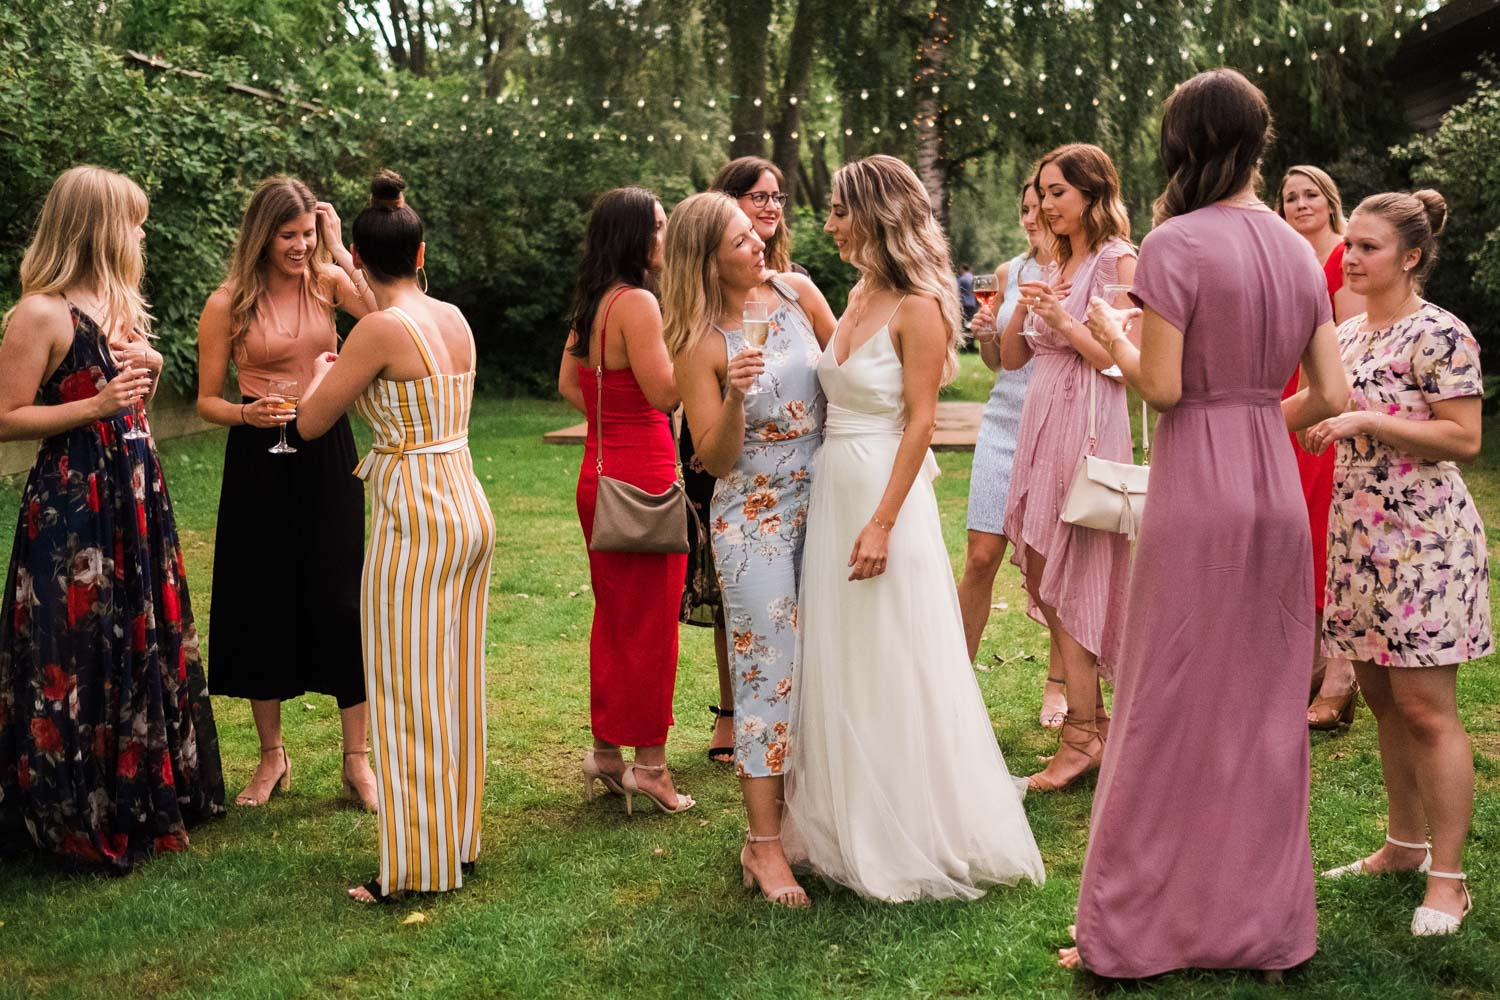 - Imagine your wedding day. Do you want to have fun with your friends, family, spouse? Or would you prefer to take direction and have interjections throughout the day?